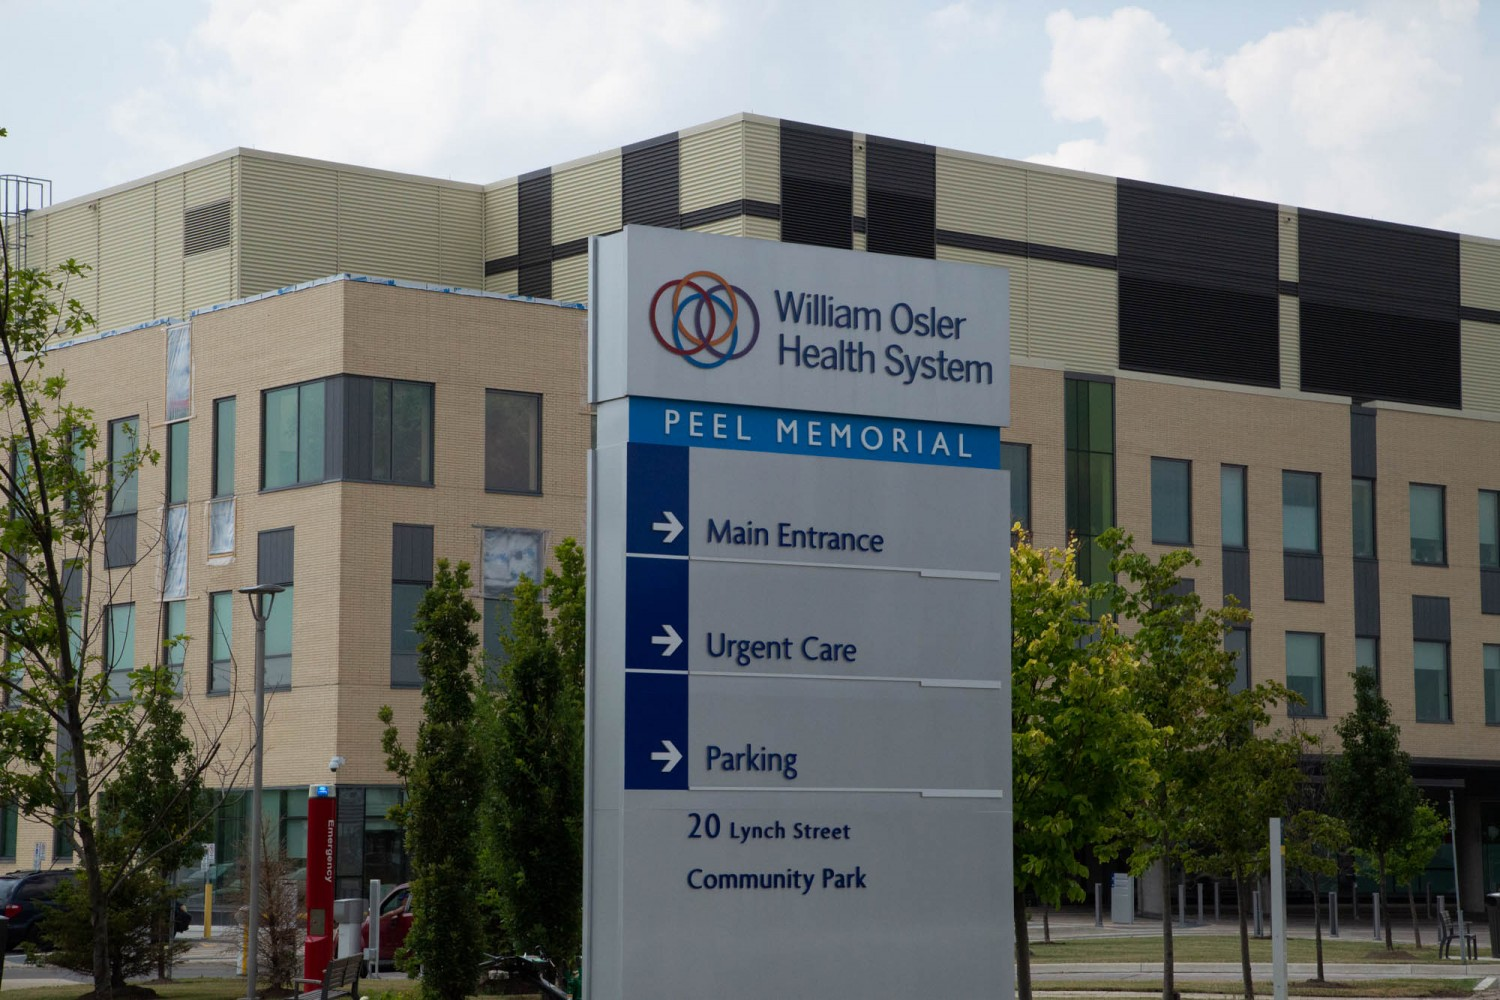 While anger mounts over Brampton's healthcare crisis Osler again delays proposal for Peel Memorial expansion